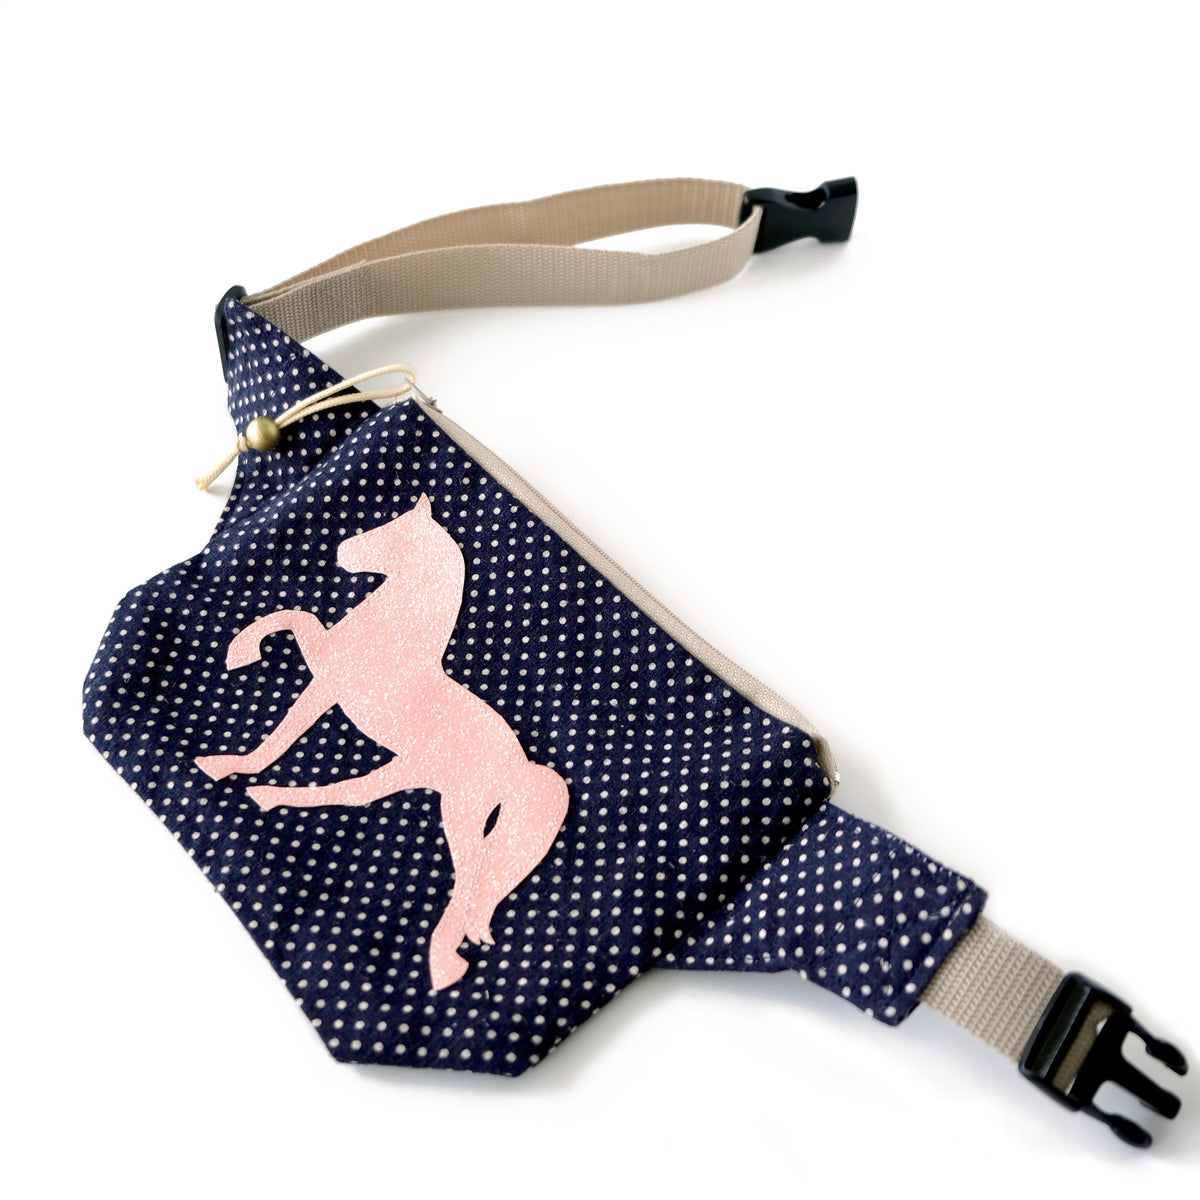 fanny pack blue polka dot with open belt